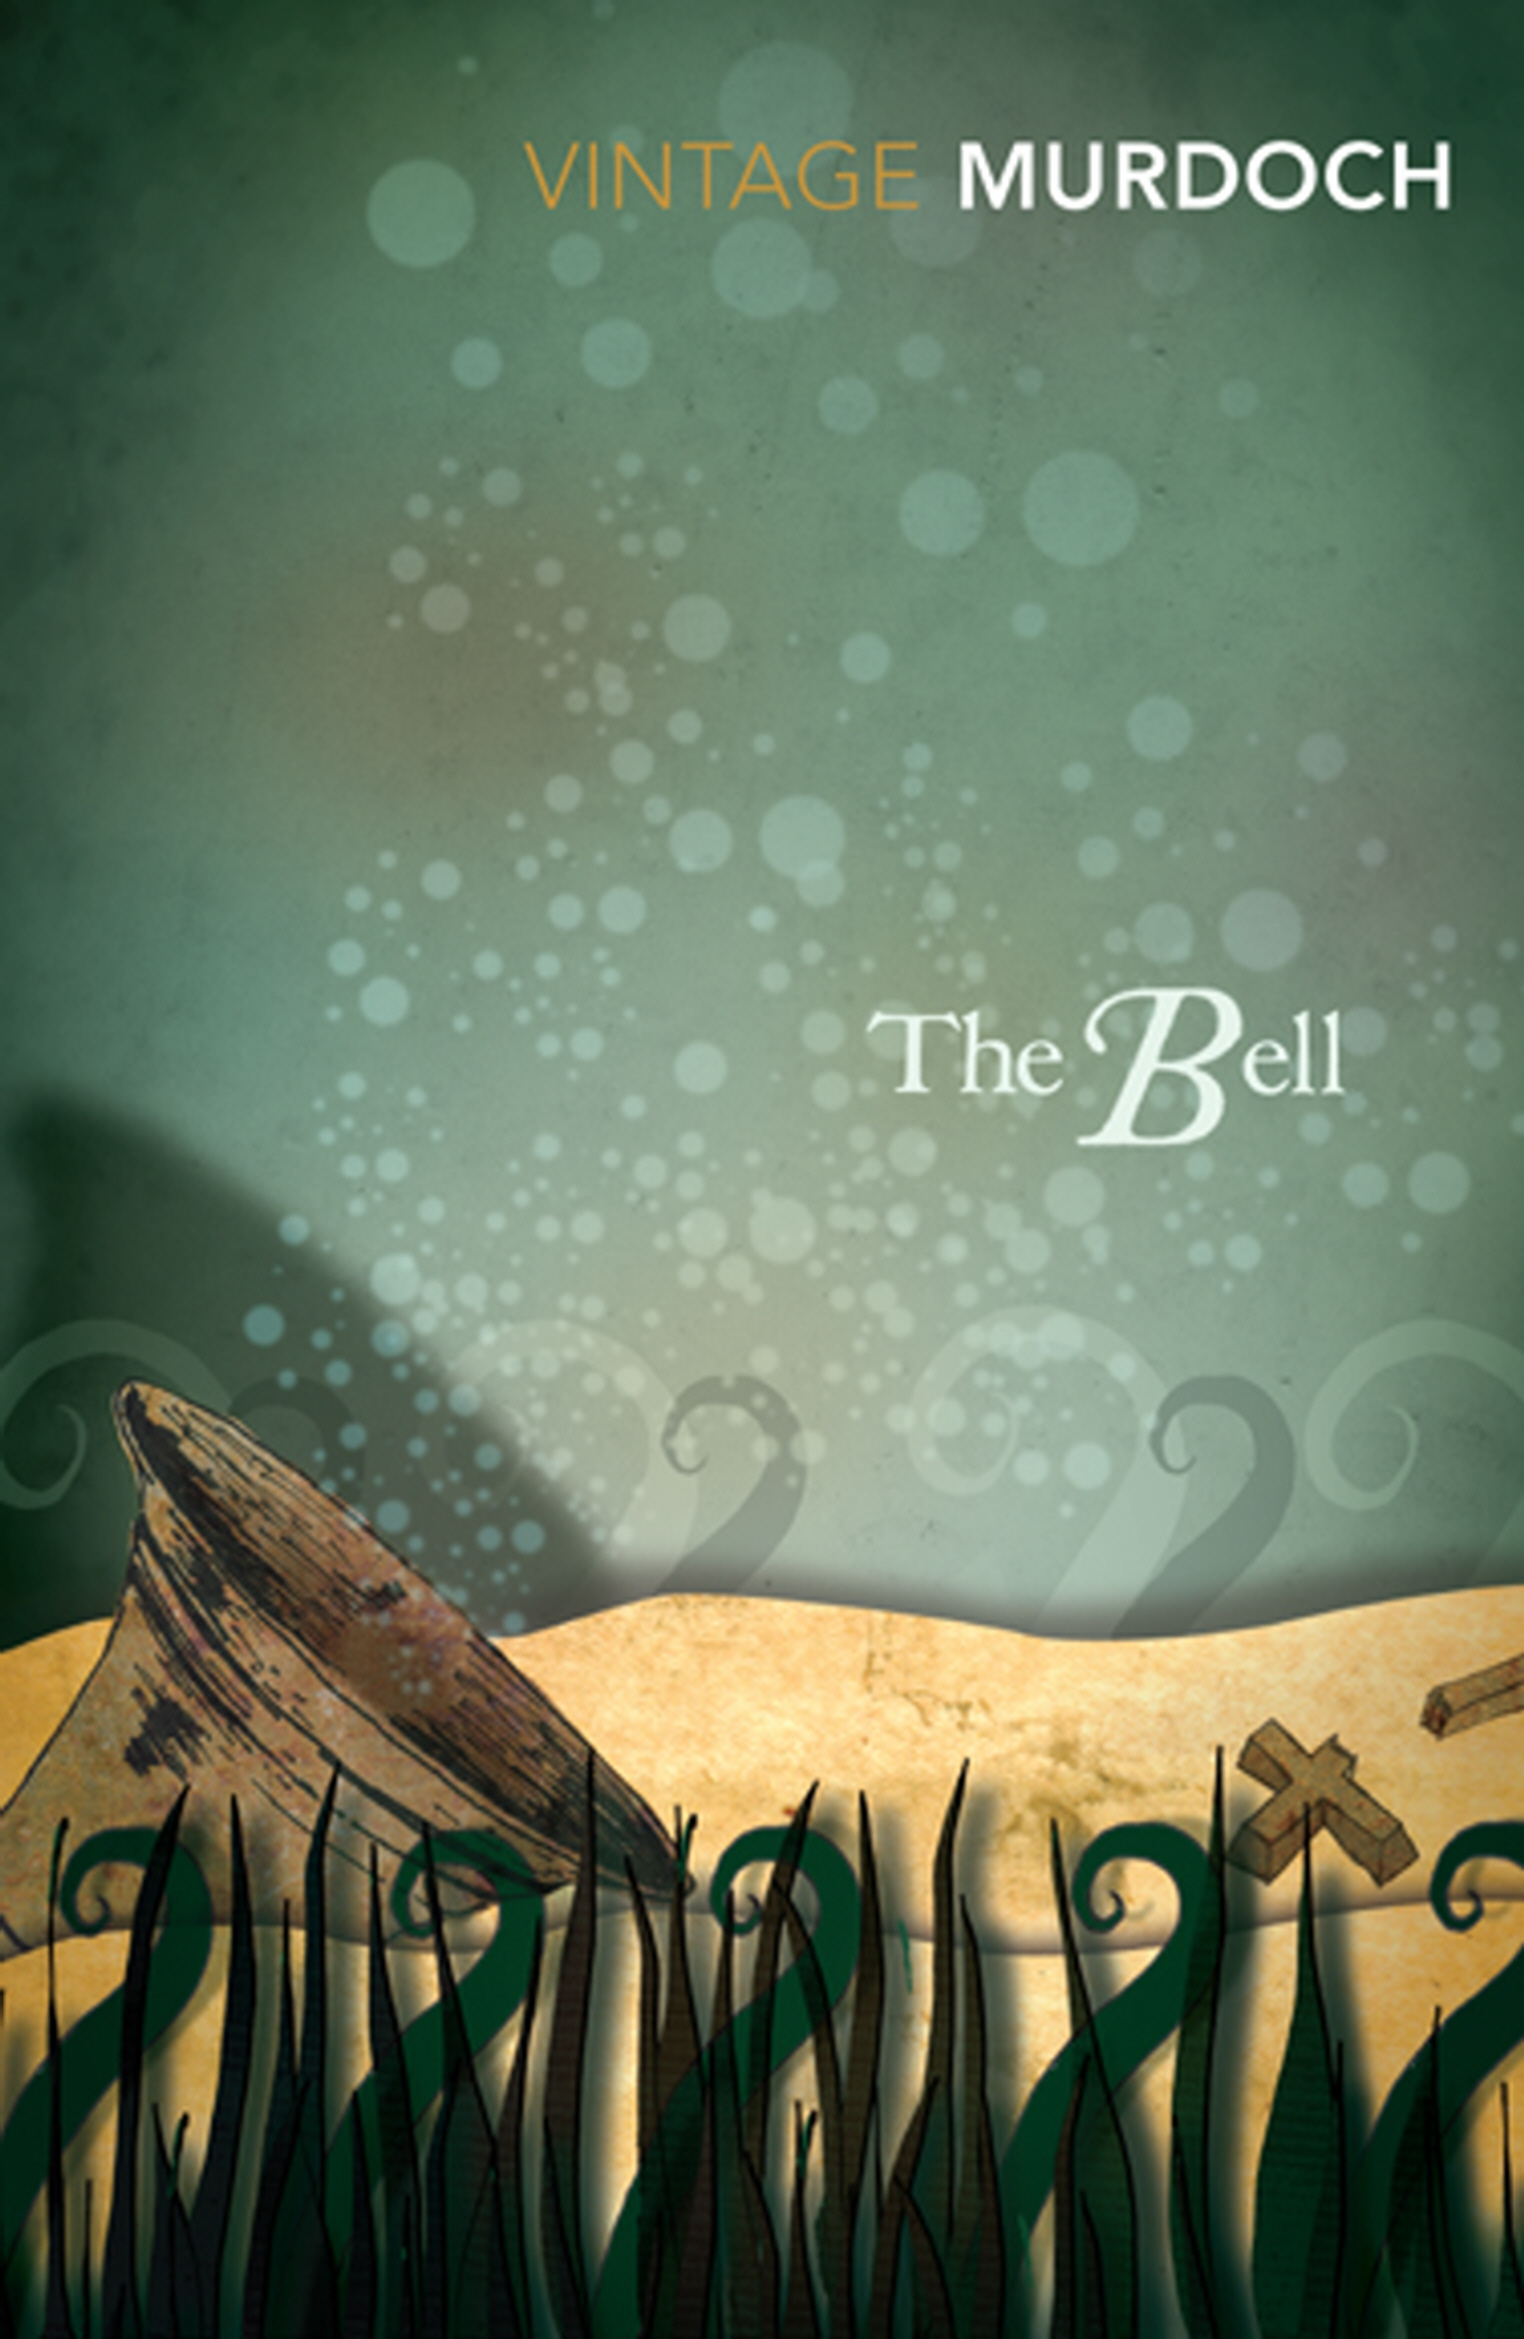 the pregnancy of dora in the bell a novel by iris murdoch The bell by iris murdoch  dora greenfield, erring wife, returns to her husband  ­iris murdoch's funny and sad novel is about religion, the fight between good .